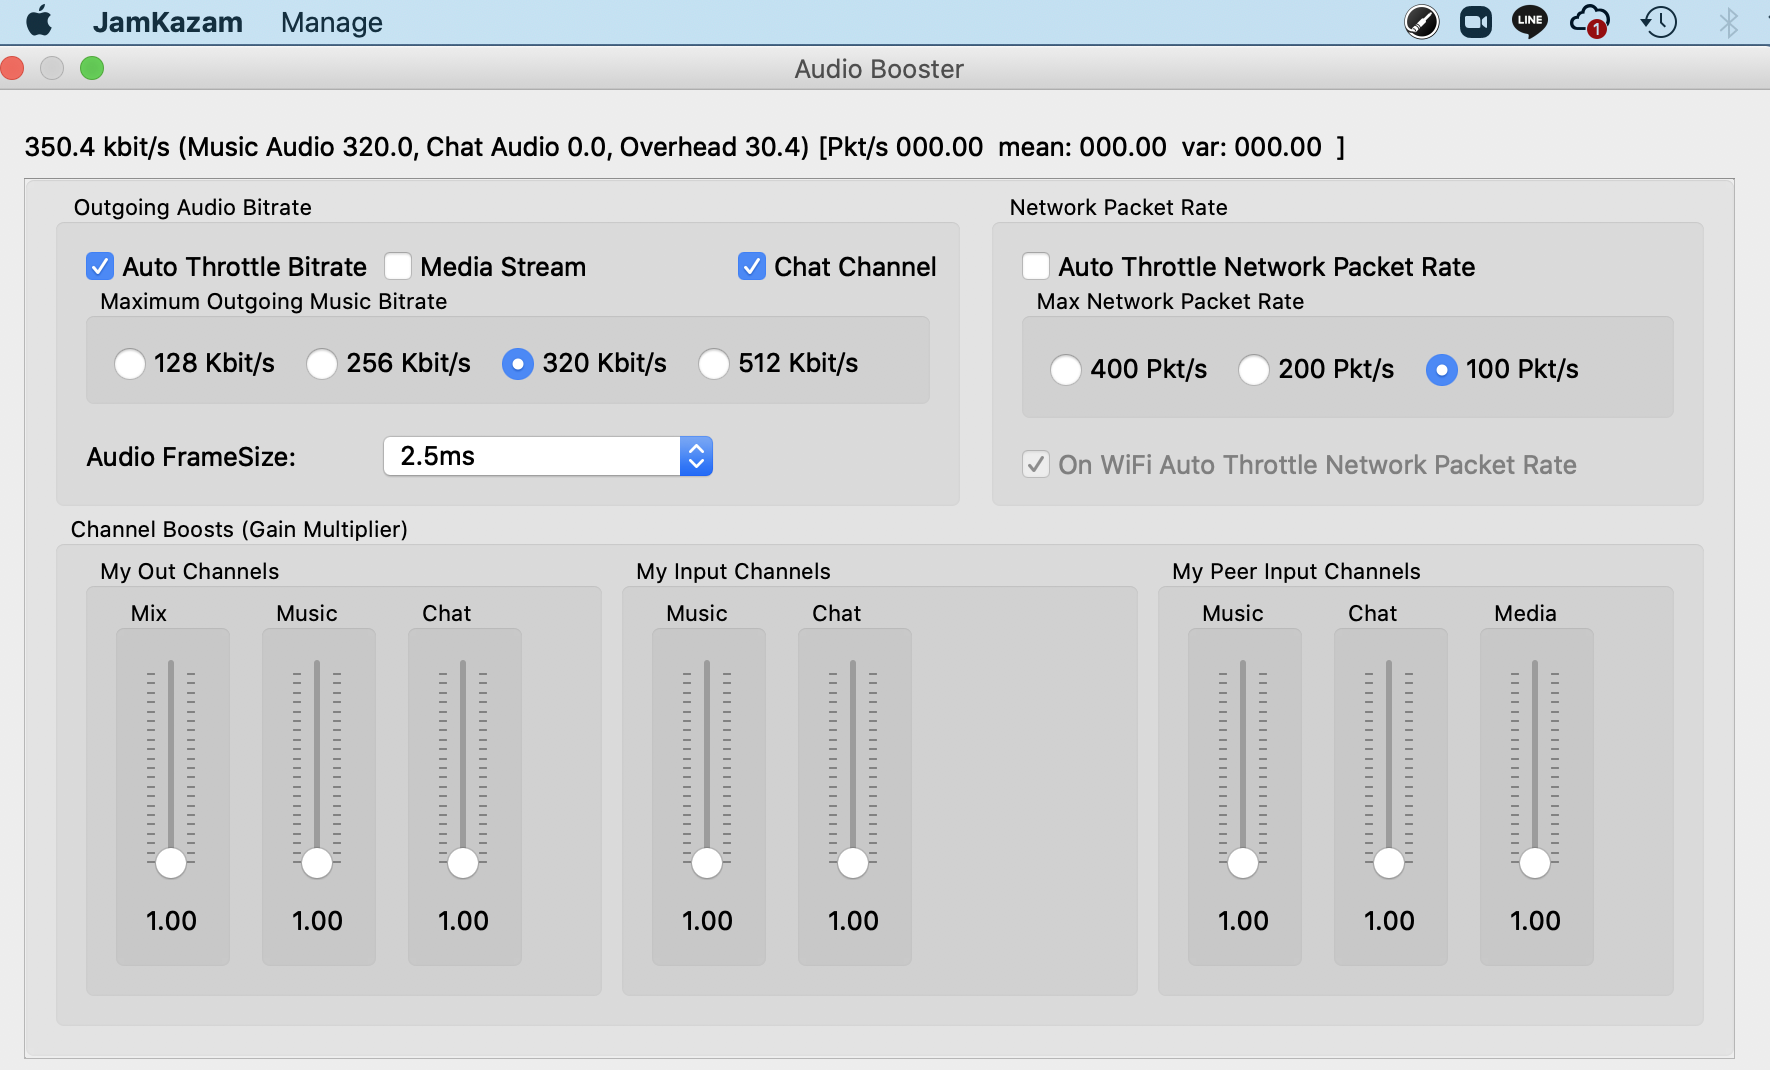 audio booster settings